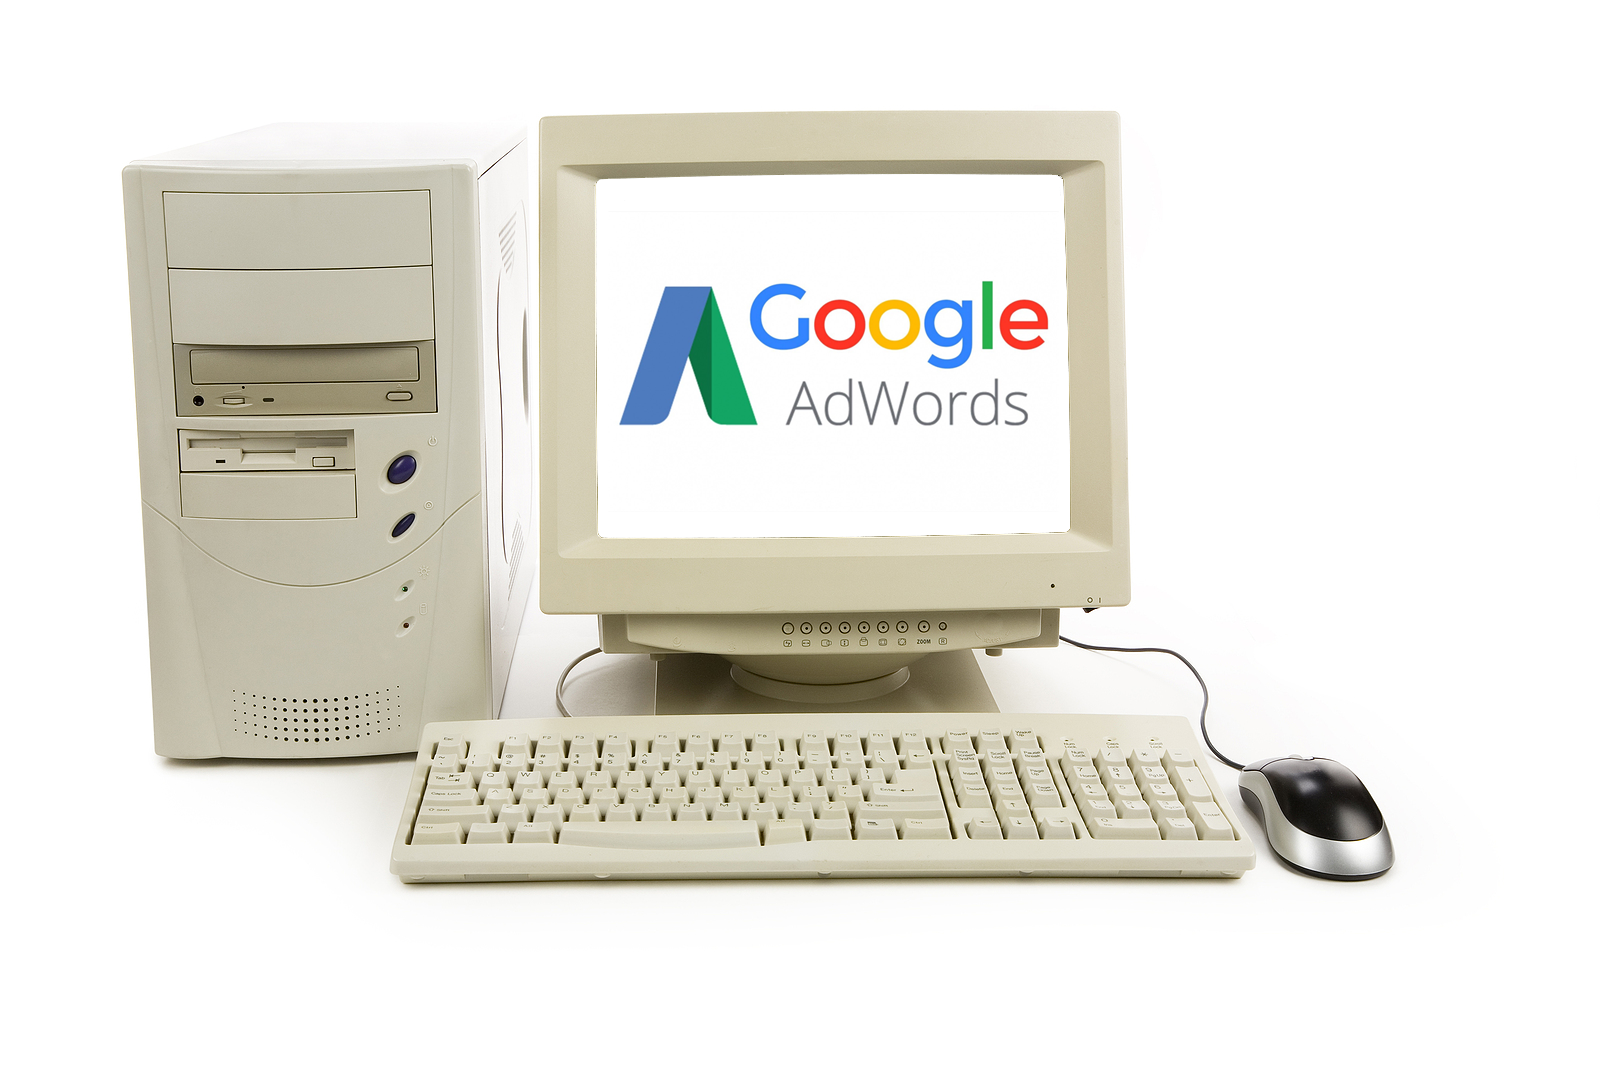 Google AdWords text and logo displayed on old computer.